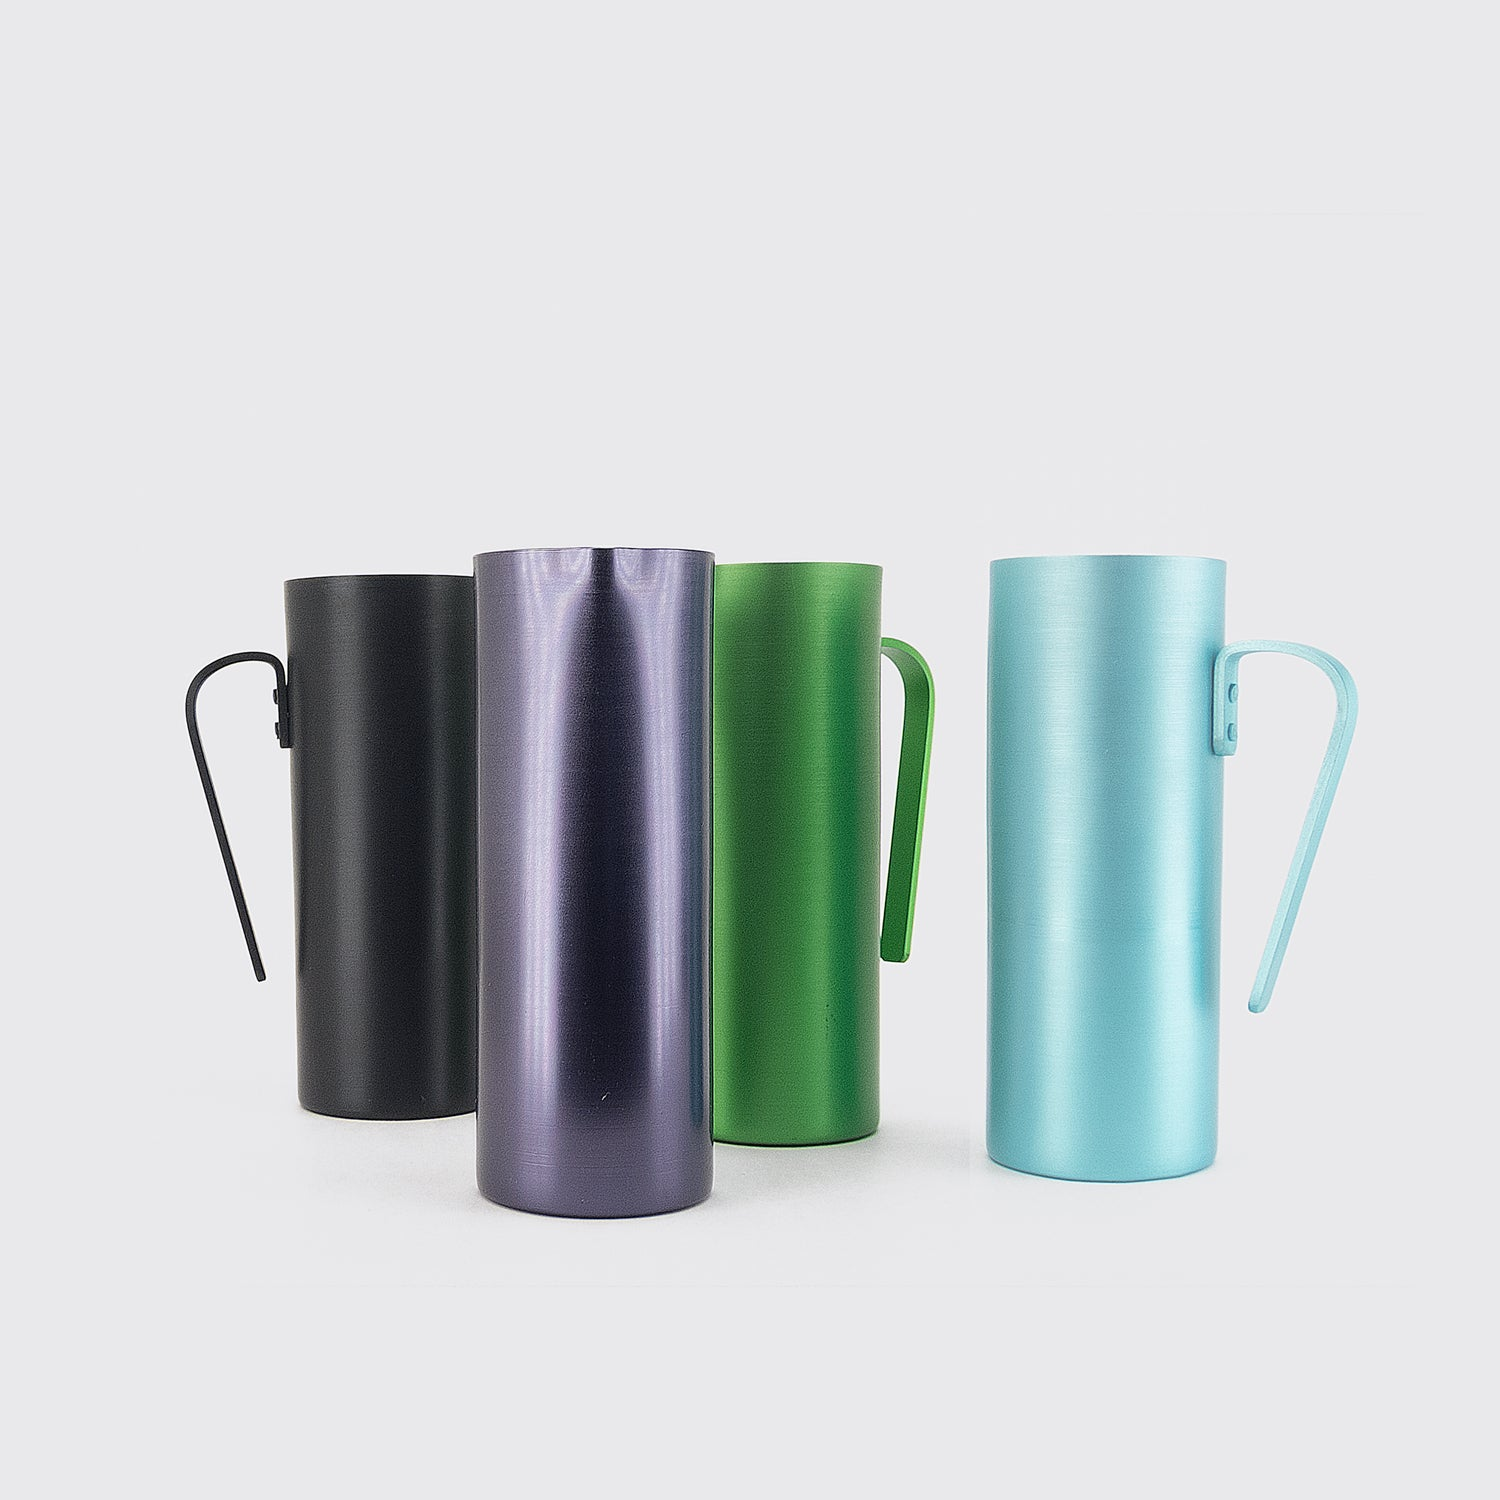 100% Re-cycled Anodized Aluminum Pitcher - Verde